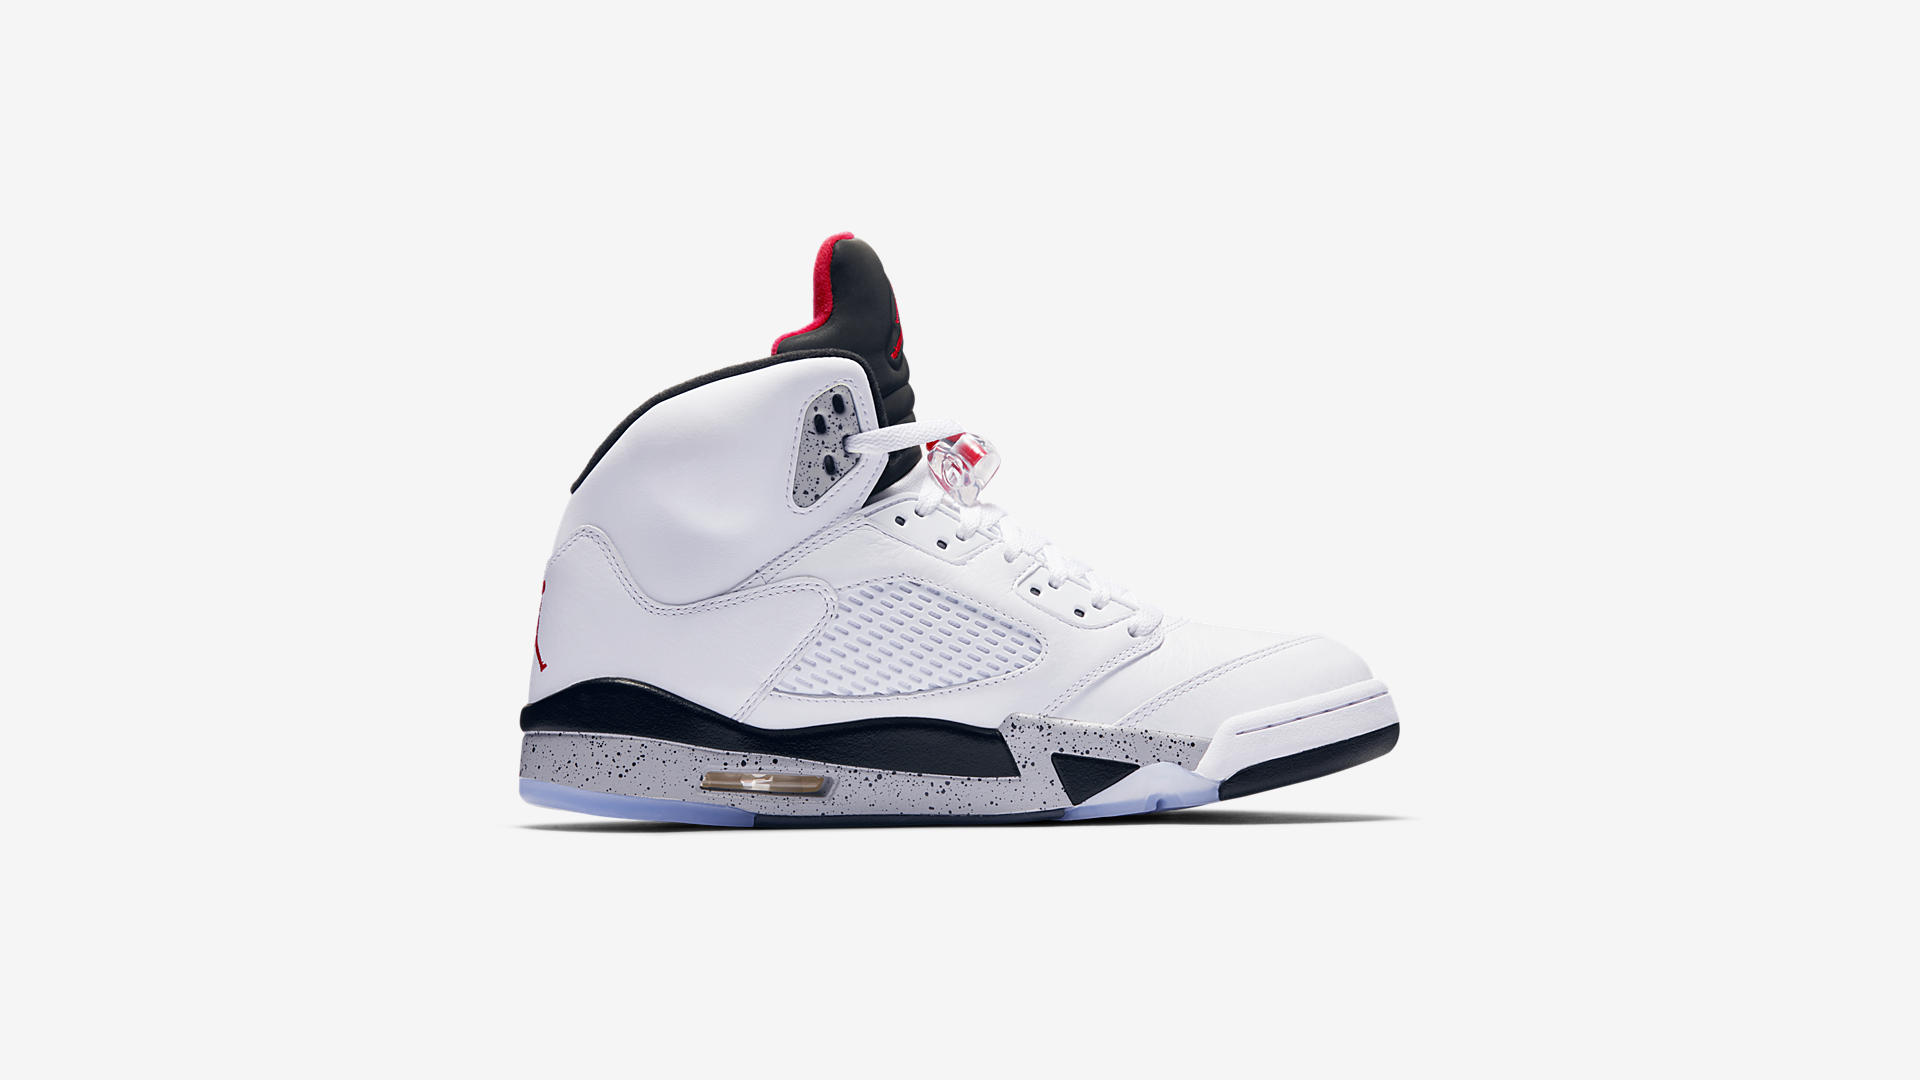 136027 104 Air Jordan 5 Retro White Cement 4